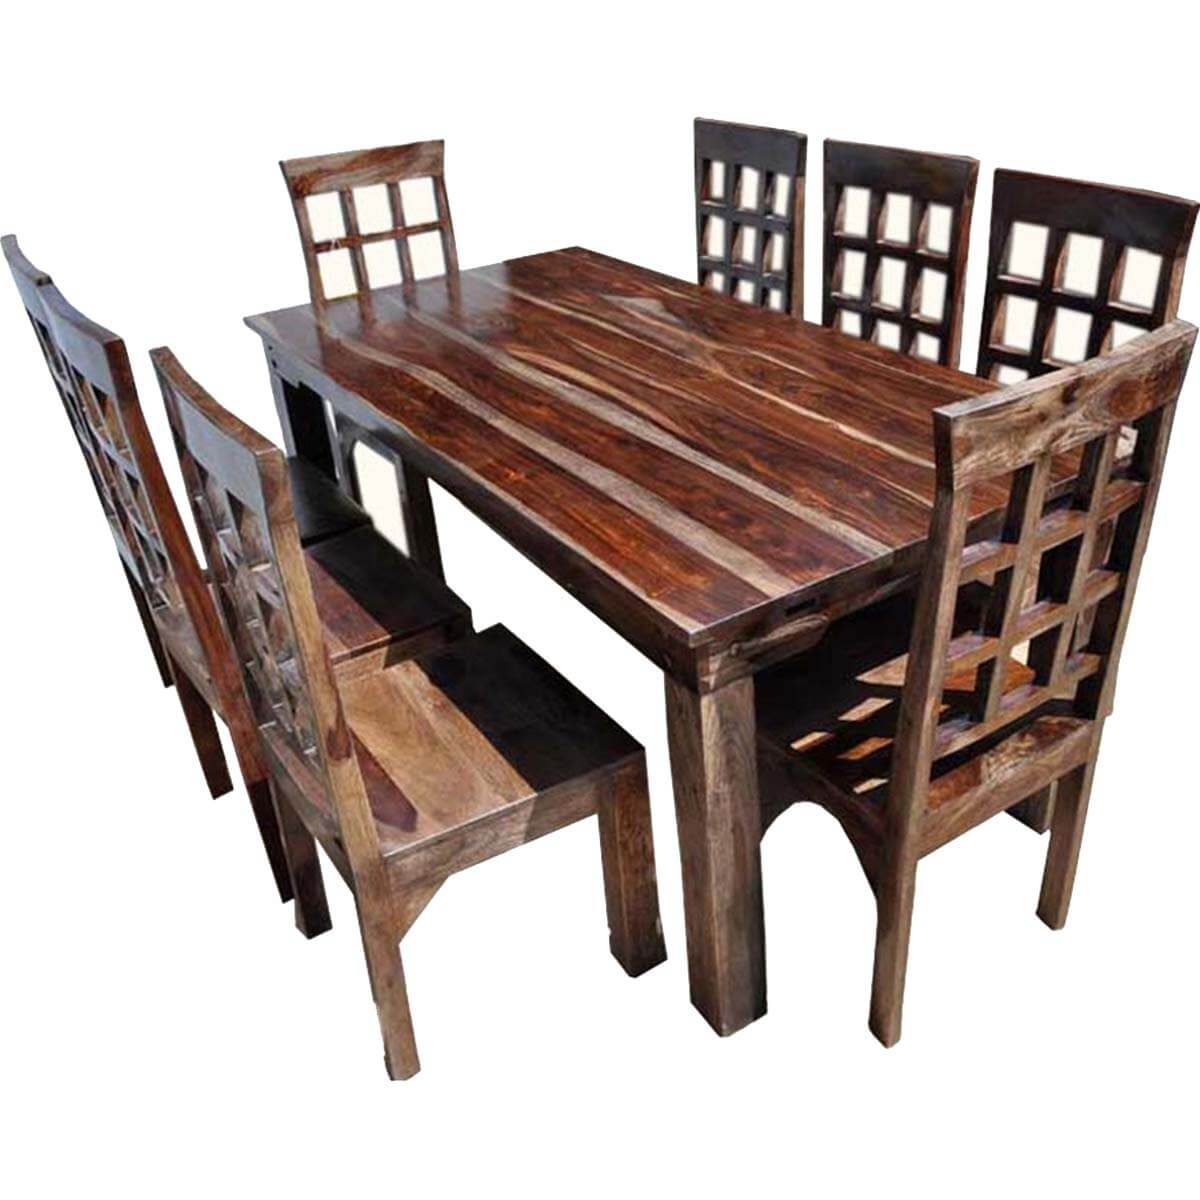 Farmhouse solid wood dining table chairs sideboard set for Wood dining room furniture